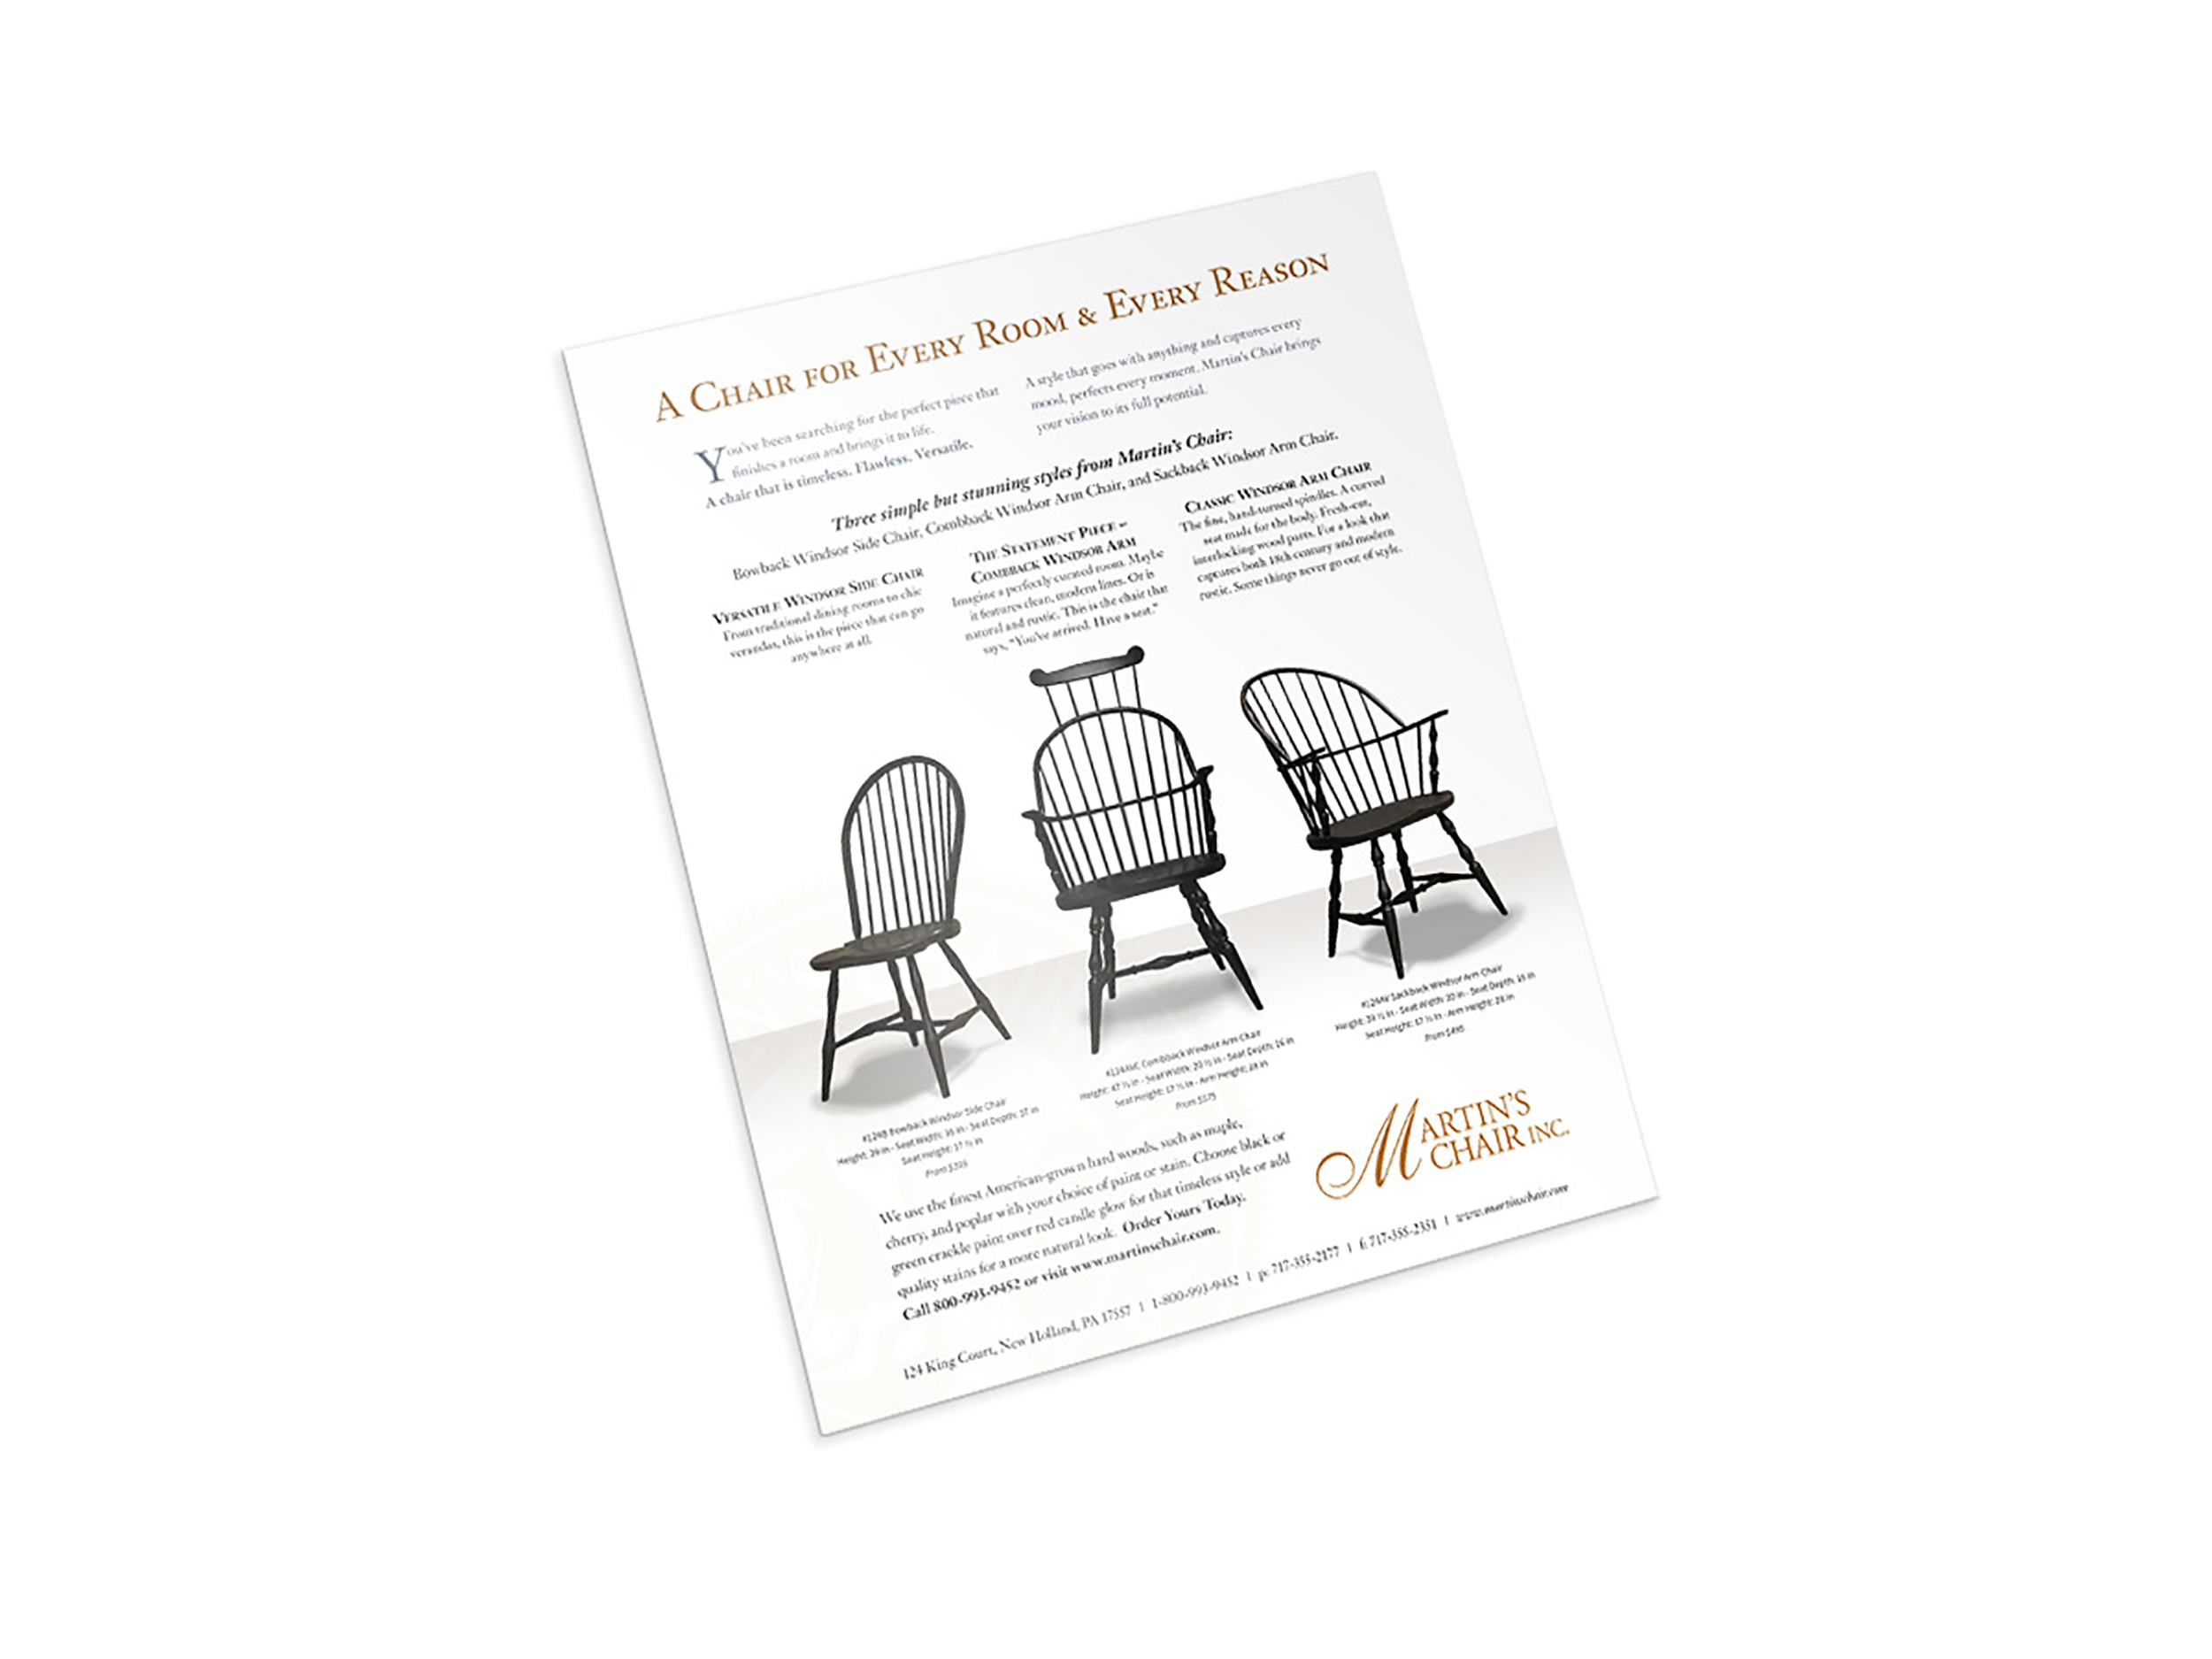 Martins-Chair-Trade-Show-Handout.jpg